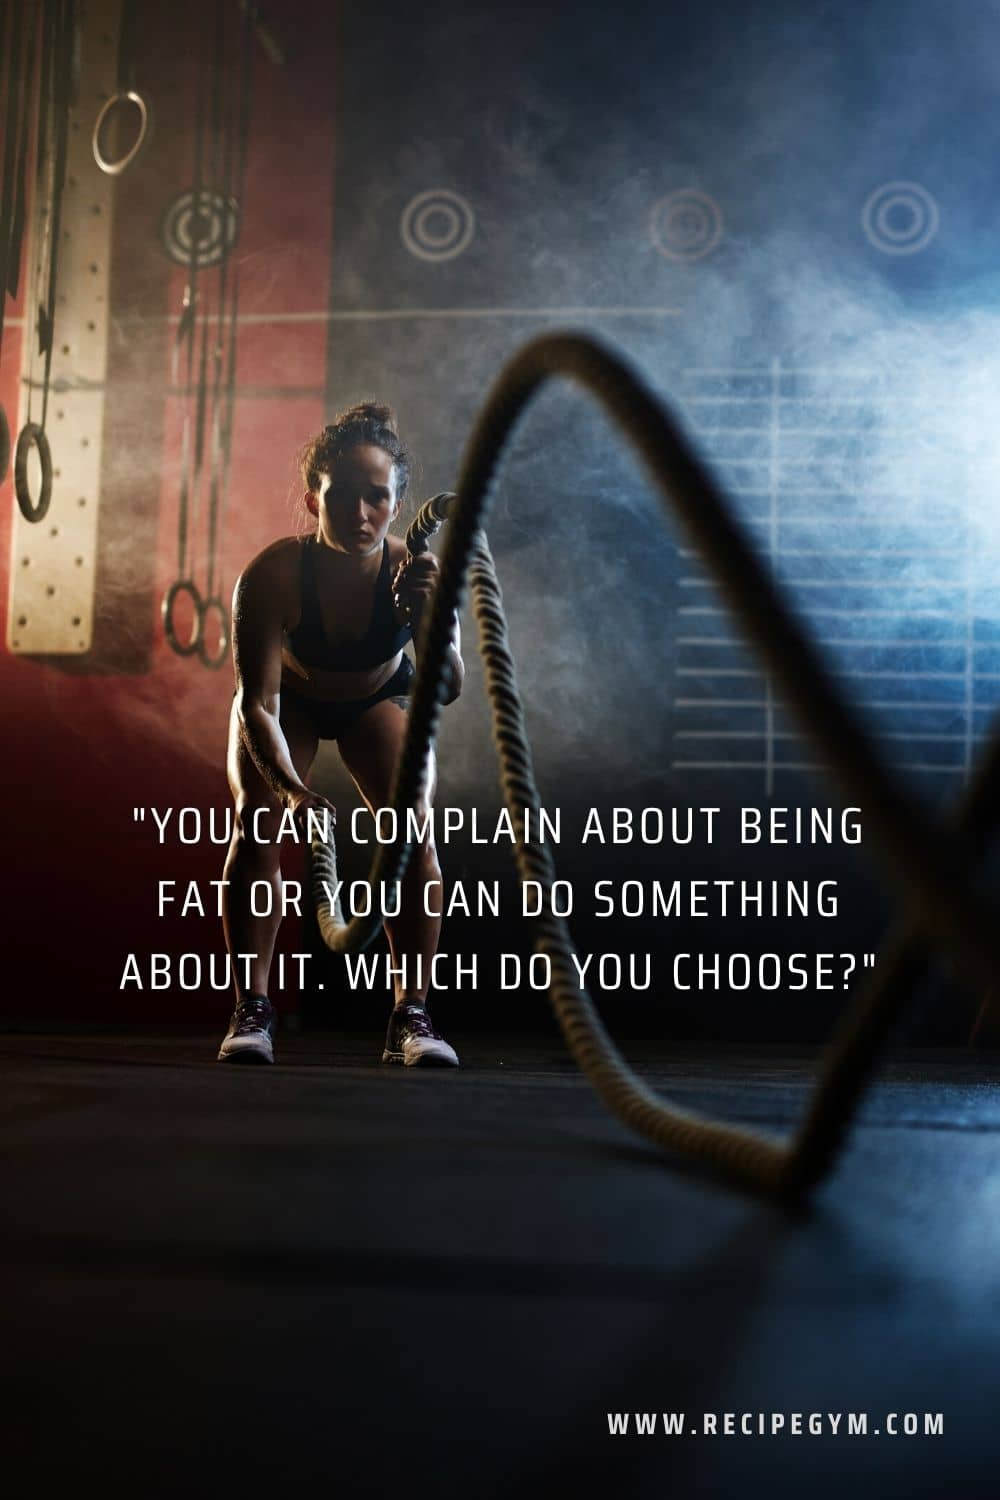 You can complain about being fat or you can do something about it. Which do you choose